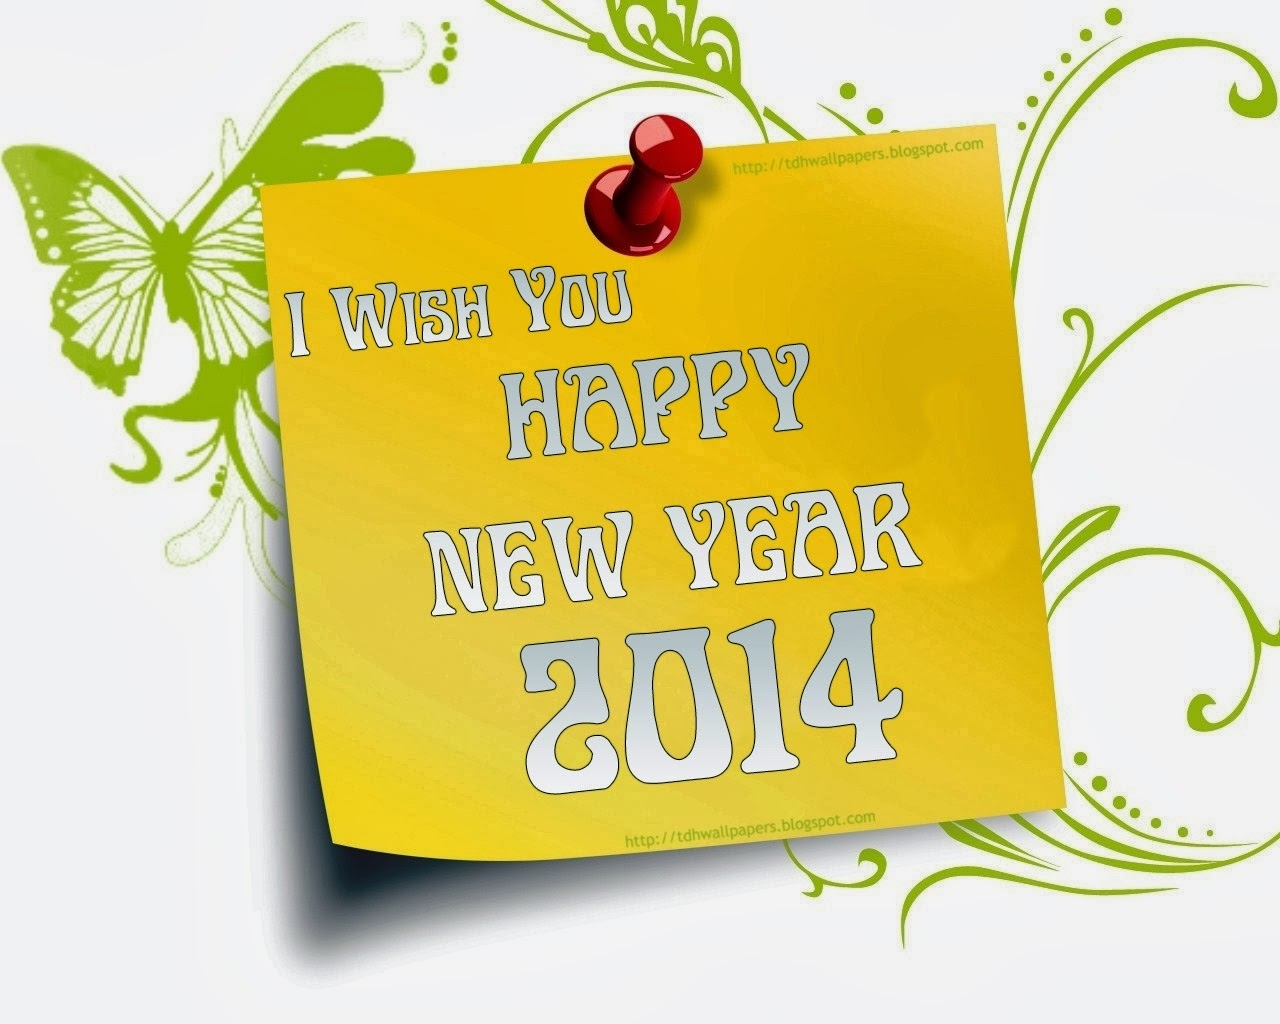 Year Wishes Wallpapers 2014 Happy New Year Wishes Wallpapers 2014.5 New Year Greeting Cards Samples 2014